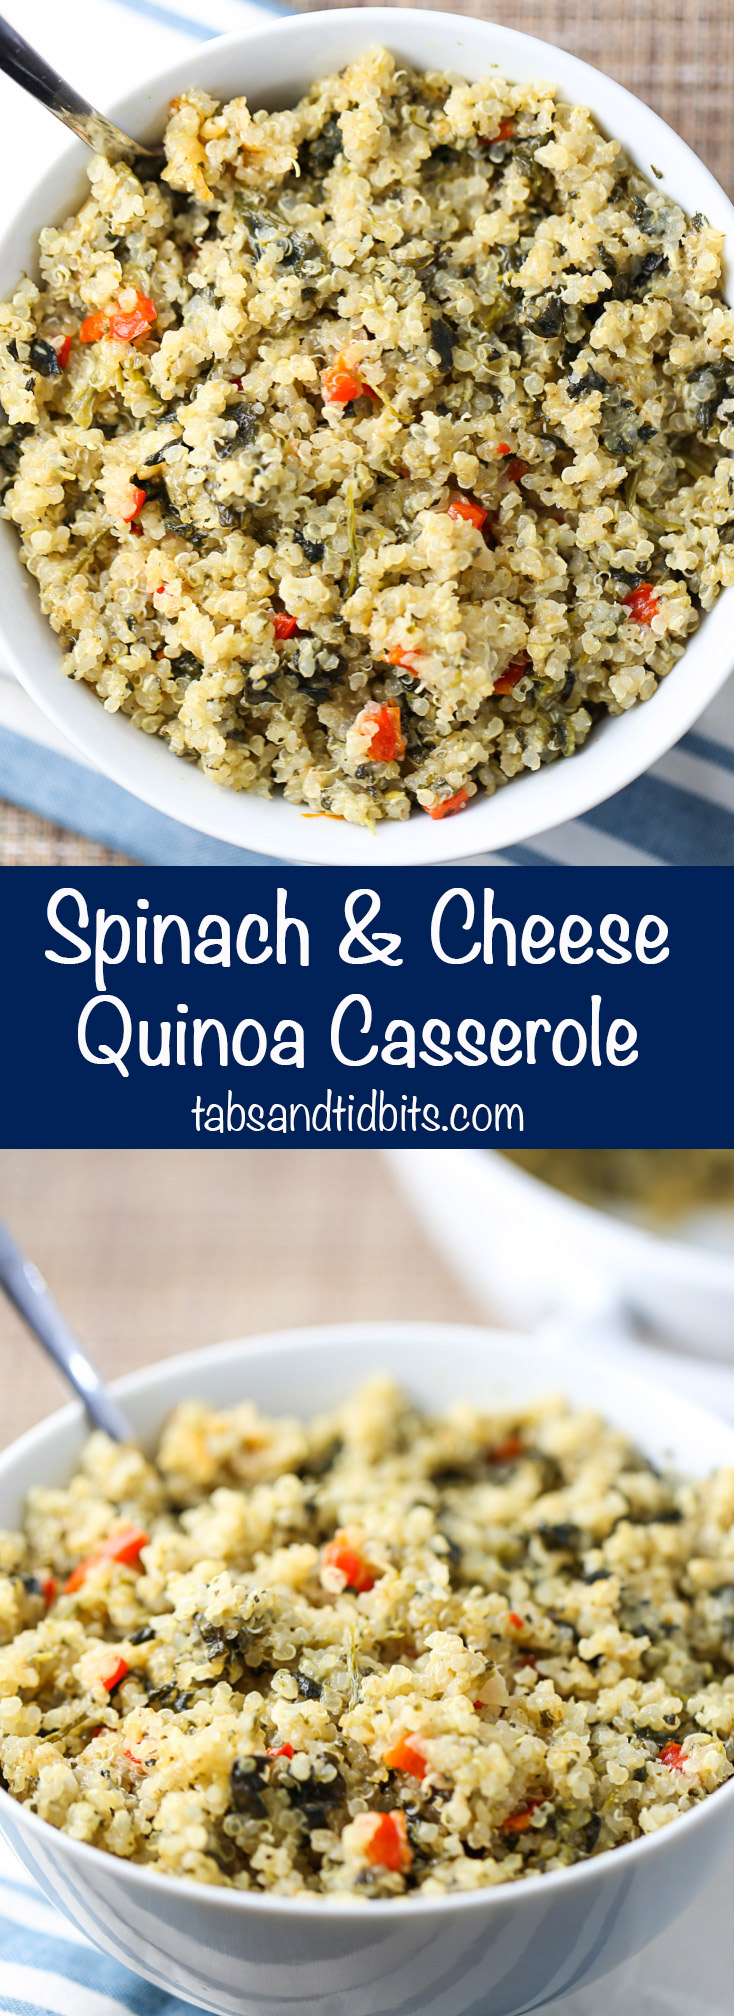 Spinach & Cheese Quinoa Casserole - This dish gives nutritional value but adds cheesy creaminess to round it out!